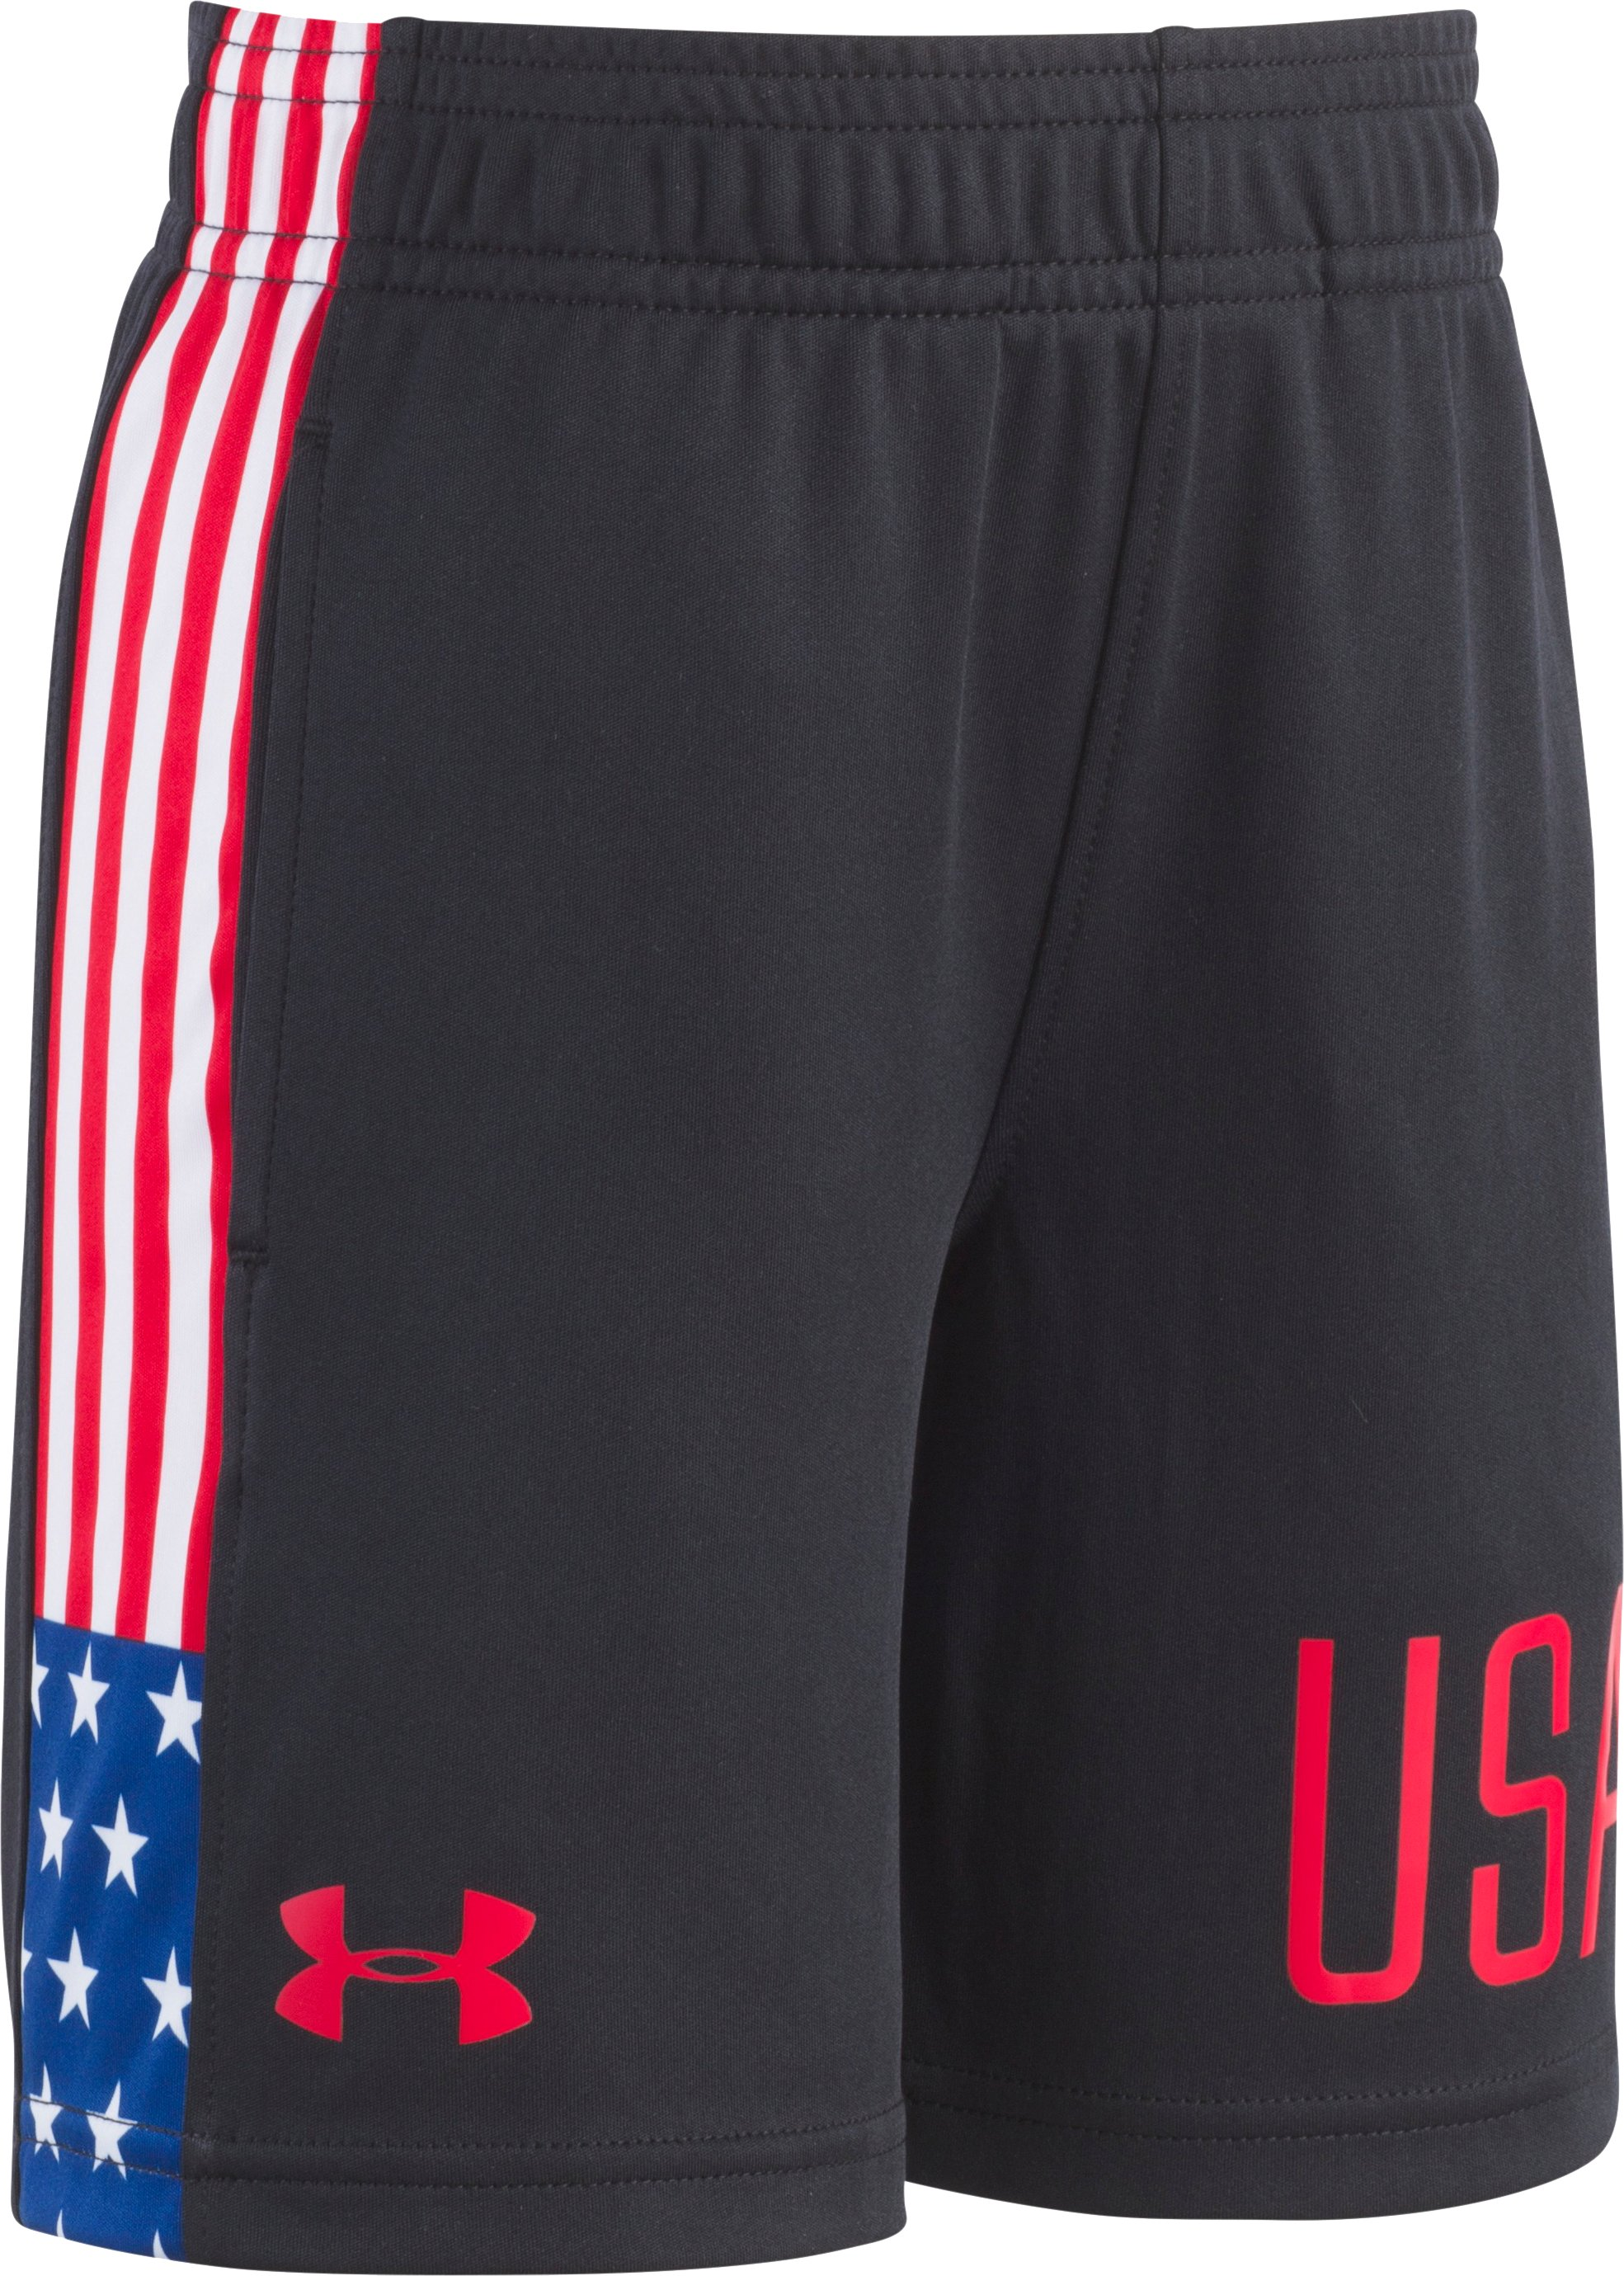 Boys' Infant UA USA Shorts, Black